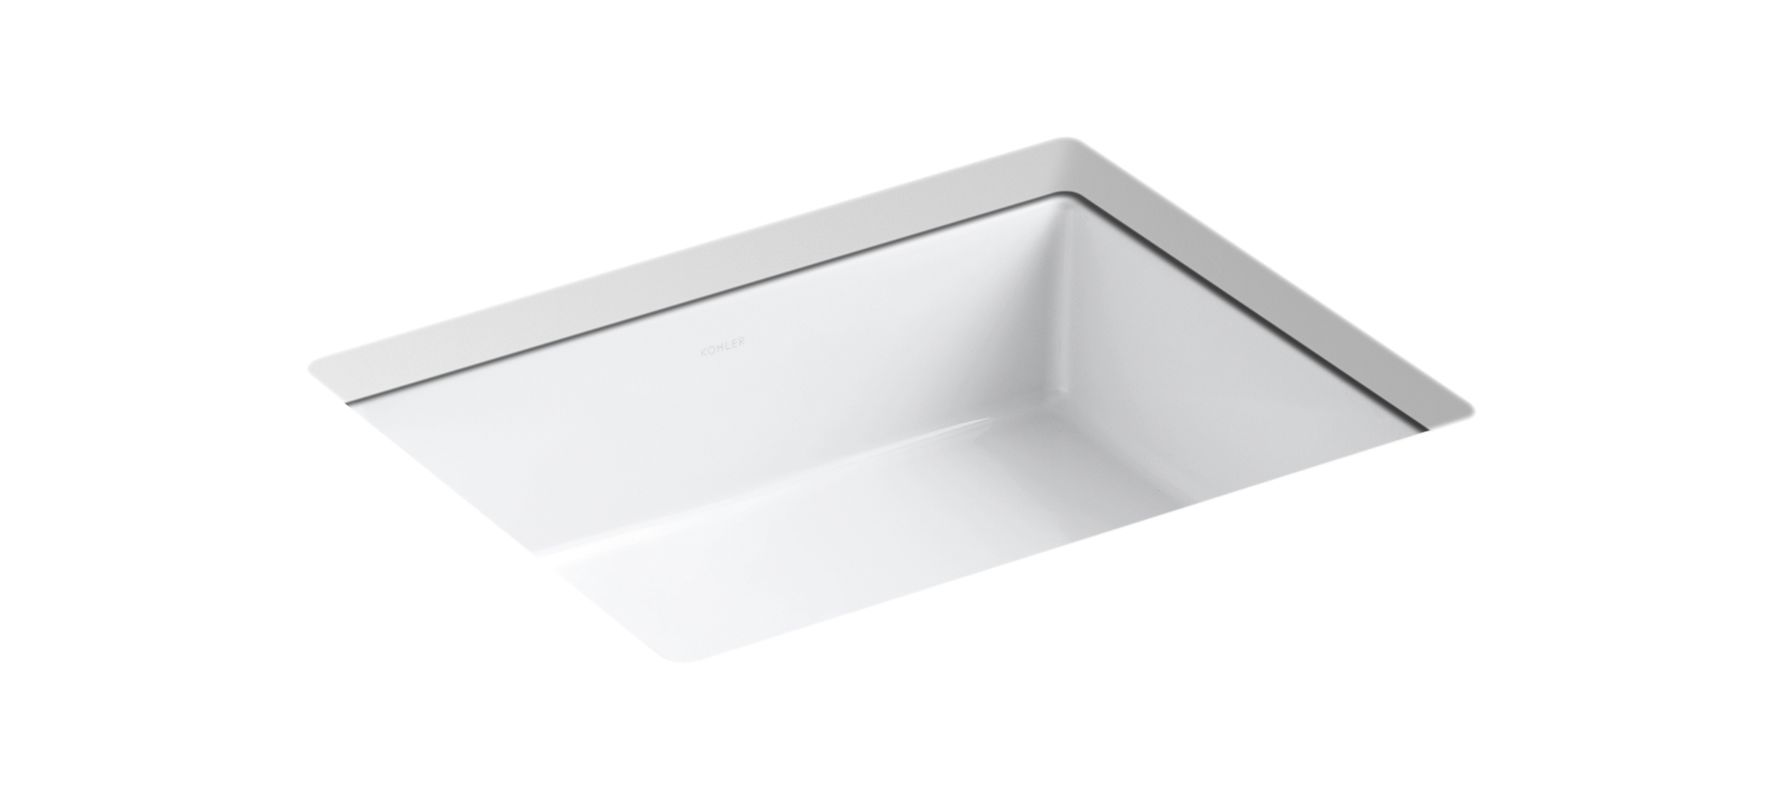 Kohler K-2882-0 White Verticyl 17-1/4 Undermount Bathroom Sink With Overflow